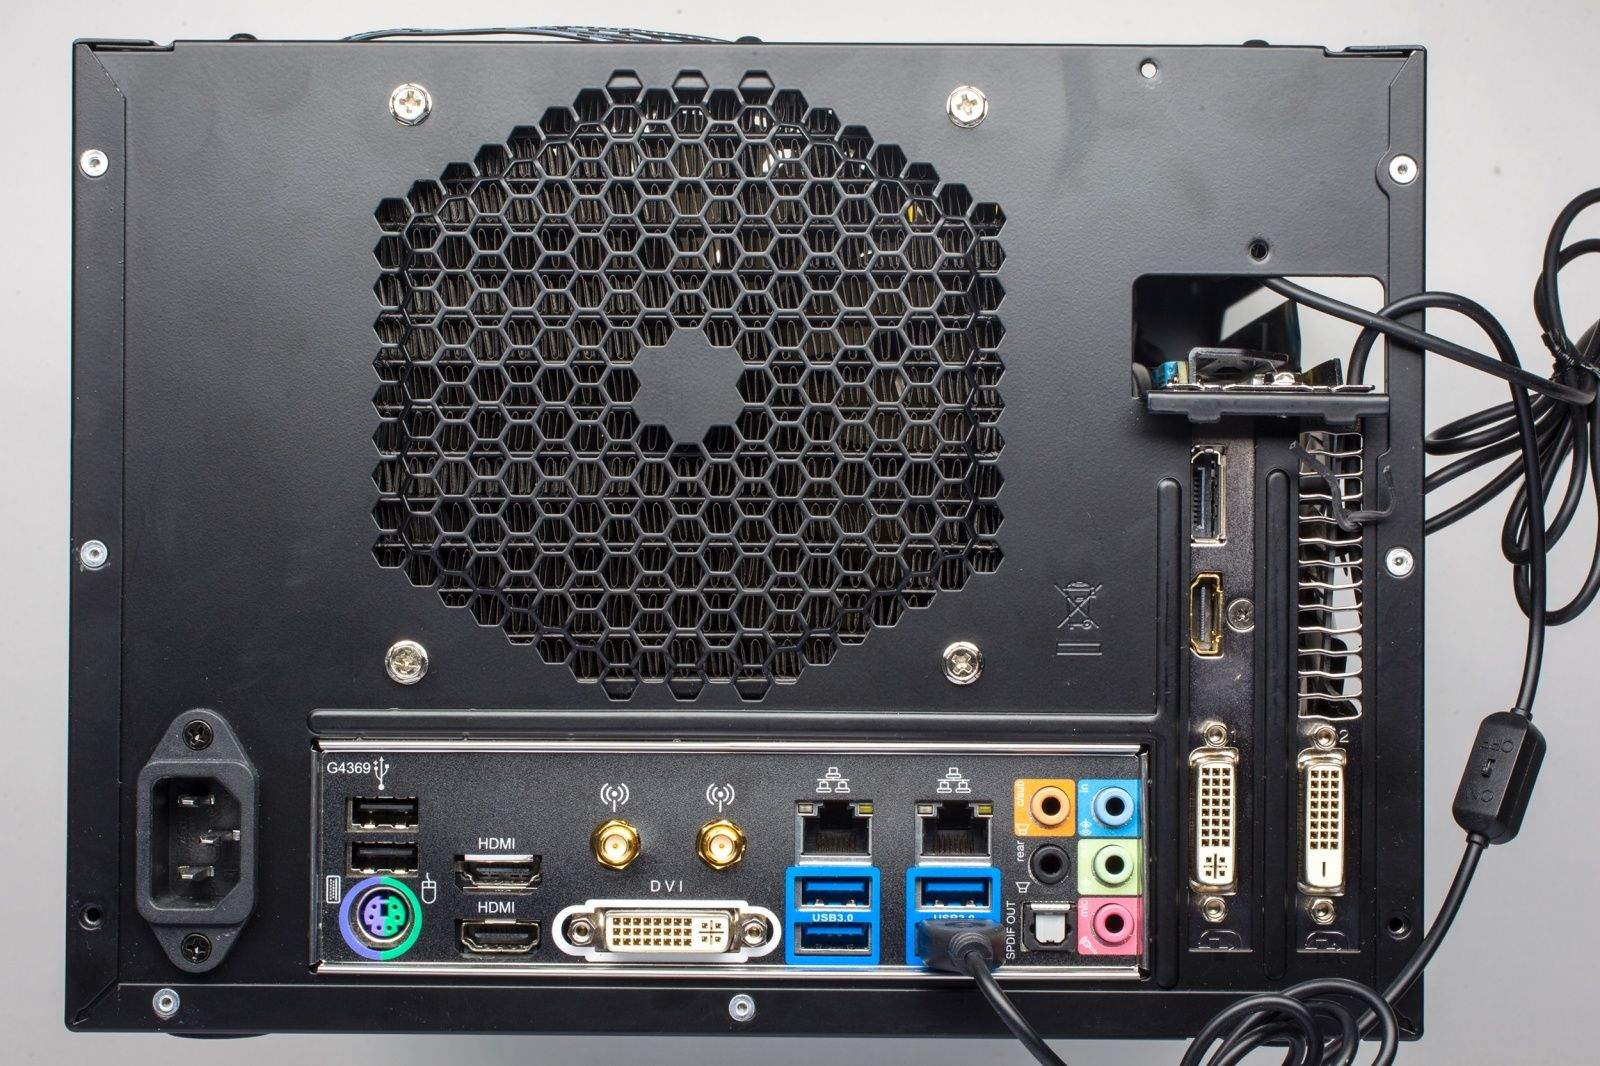 Hot-rod Hackintoshes perform like the latest Mac Pro | Cult of Mac